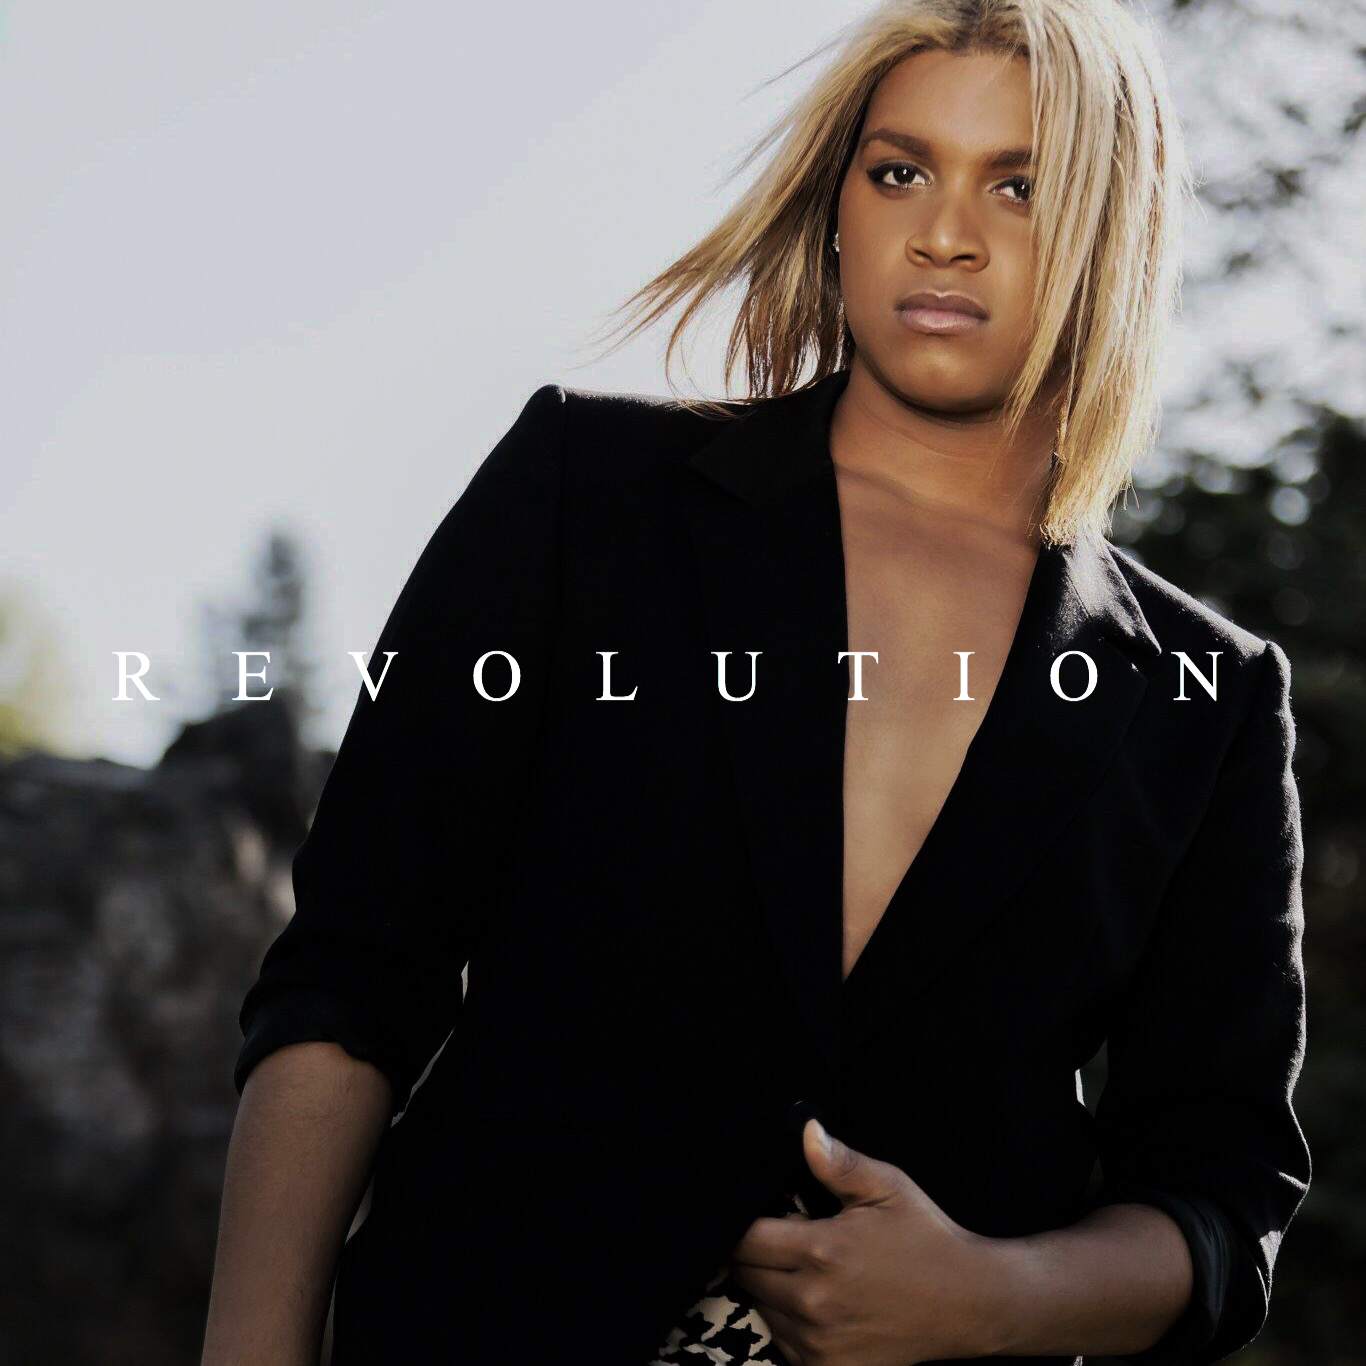 - REVOLUTION LPEXECUTIVE PRODUCERS: PRINCETON MAHARAM, YOUTH MOVEMENT RECORDS (YMR)PRODUCER: WILL BRACYWRITERS: PRINCETON MAHARAM, DOMINIQUE JONESIMAGERY: VERONICA C. BURGESSALBUM RECORDED: YOUTH MOVEMENT RECORDS (YMR), CRAIG CASEY STUDIOSALBUM ENGINEERED BY: CRAIG CASEYMIXED & MASTERED BY: CRAIG CASEY, STEPHEN DUFFY2012